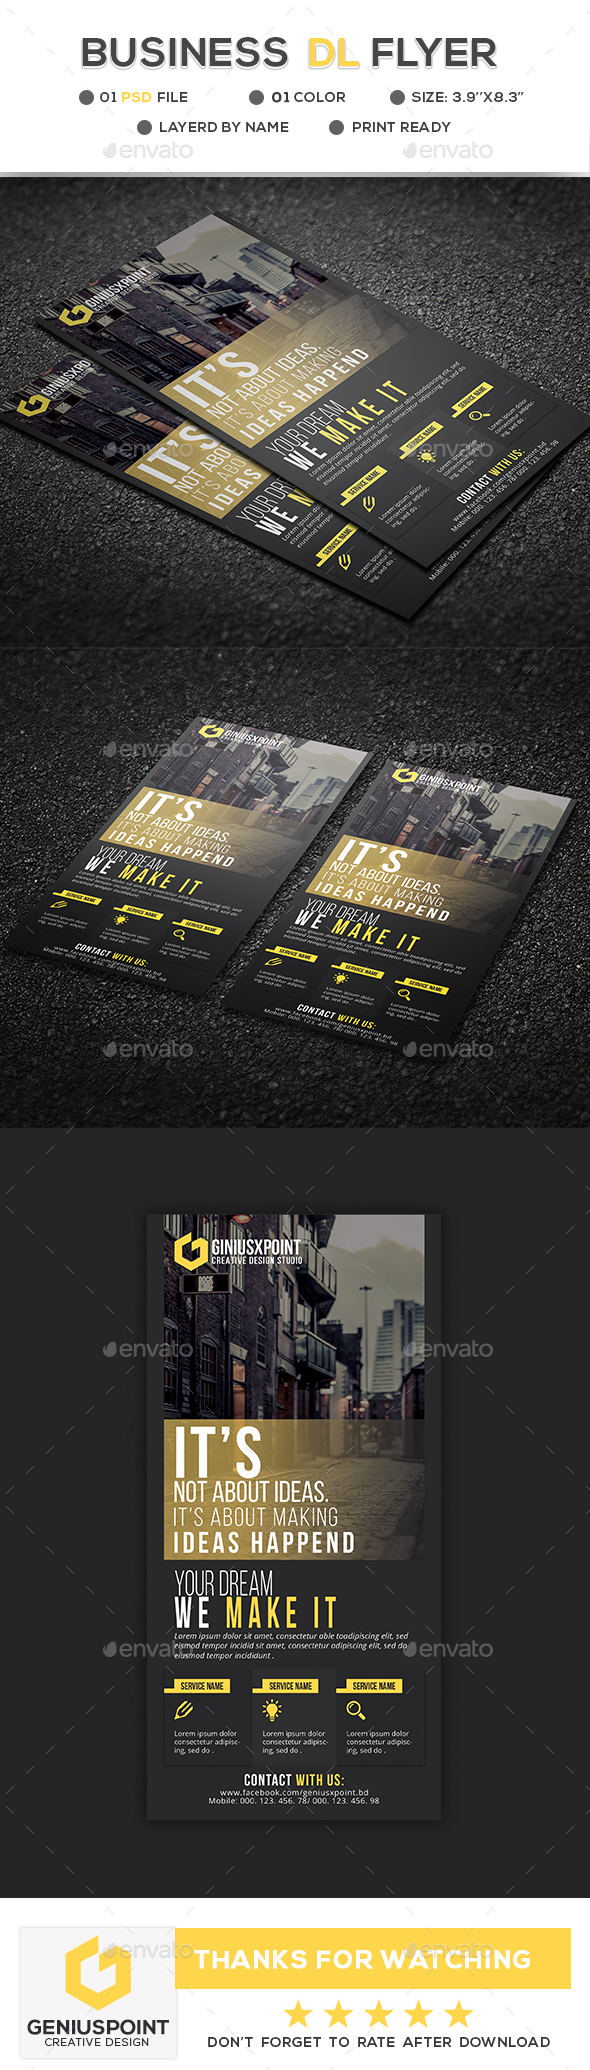 Business DL Flyer - Flyers Print Templates